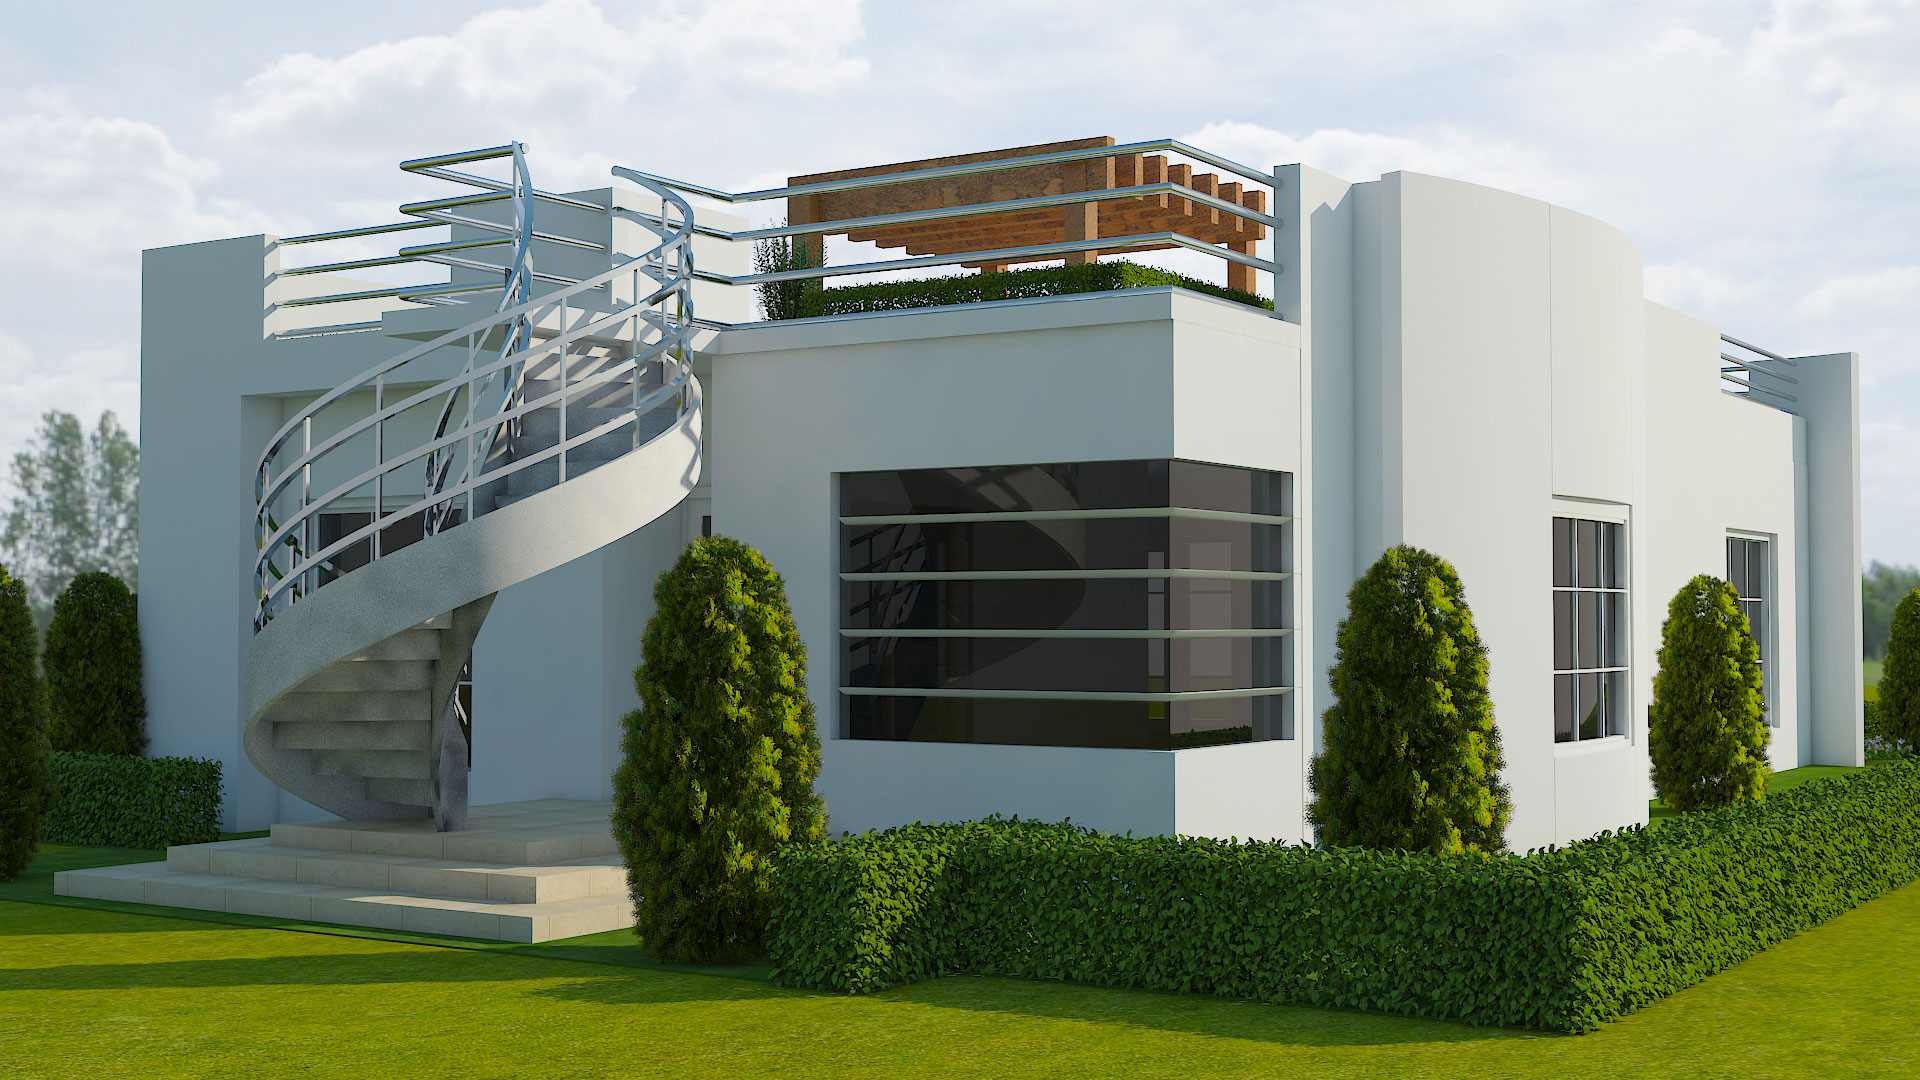 Rendering of two-story, white, concrete home with a curved staircase in front